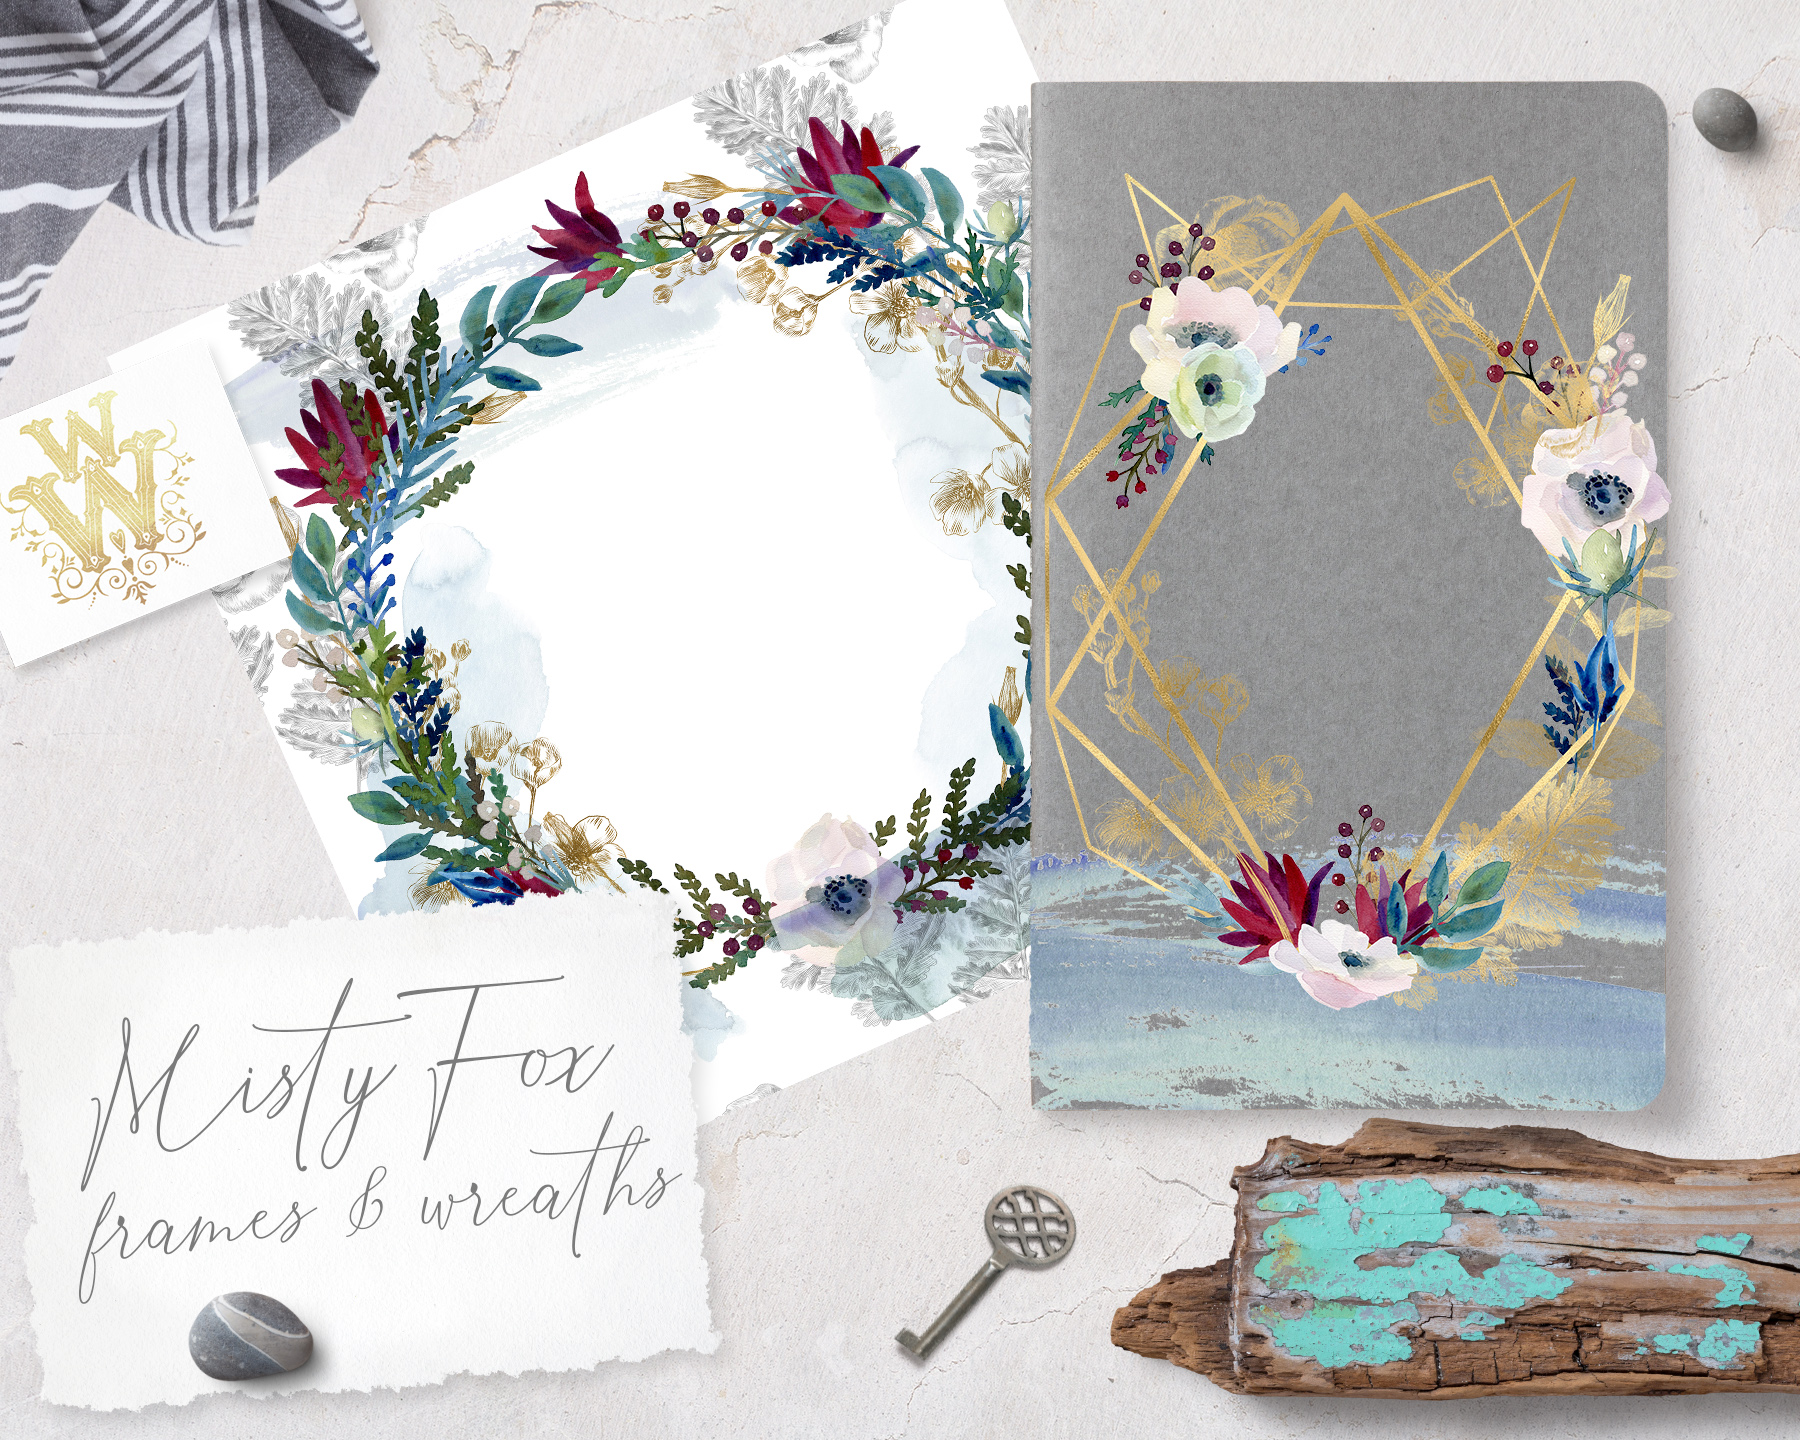 Watercolor white flowers frame, wedding wreath invitation example image 5